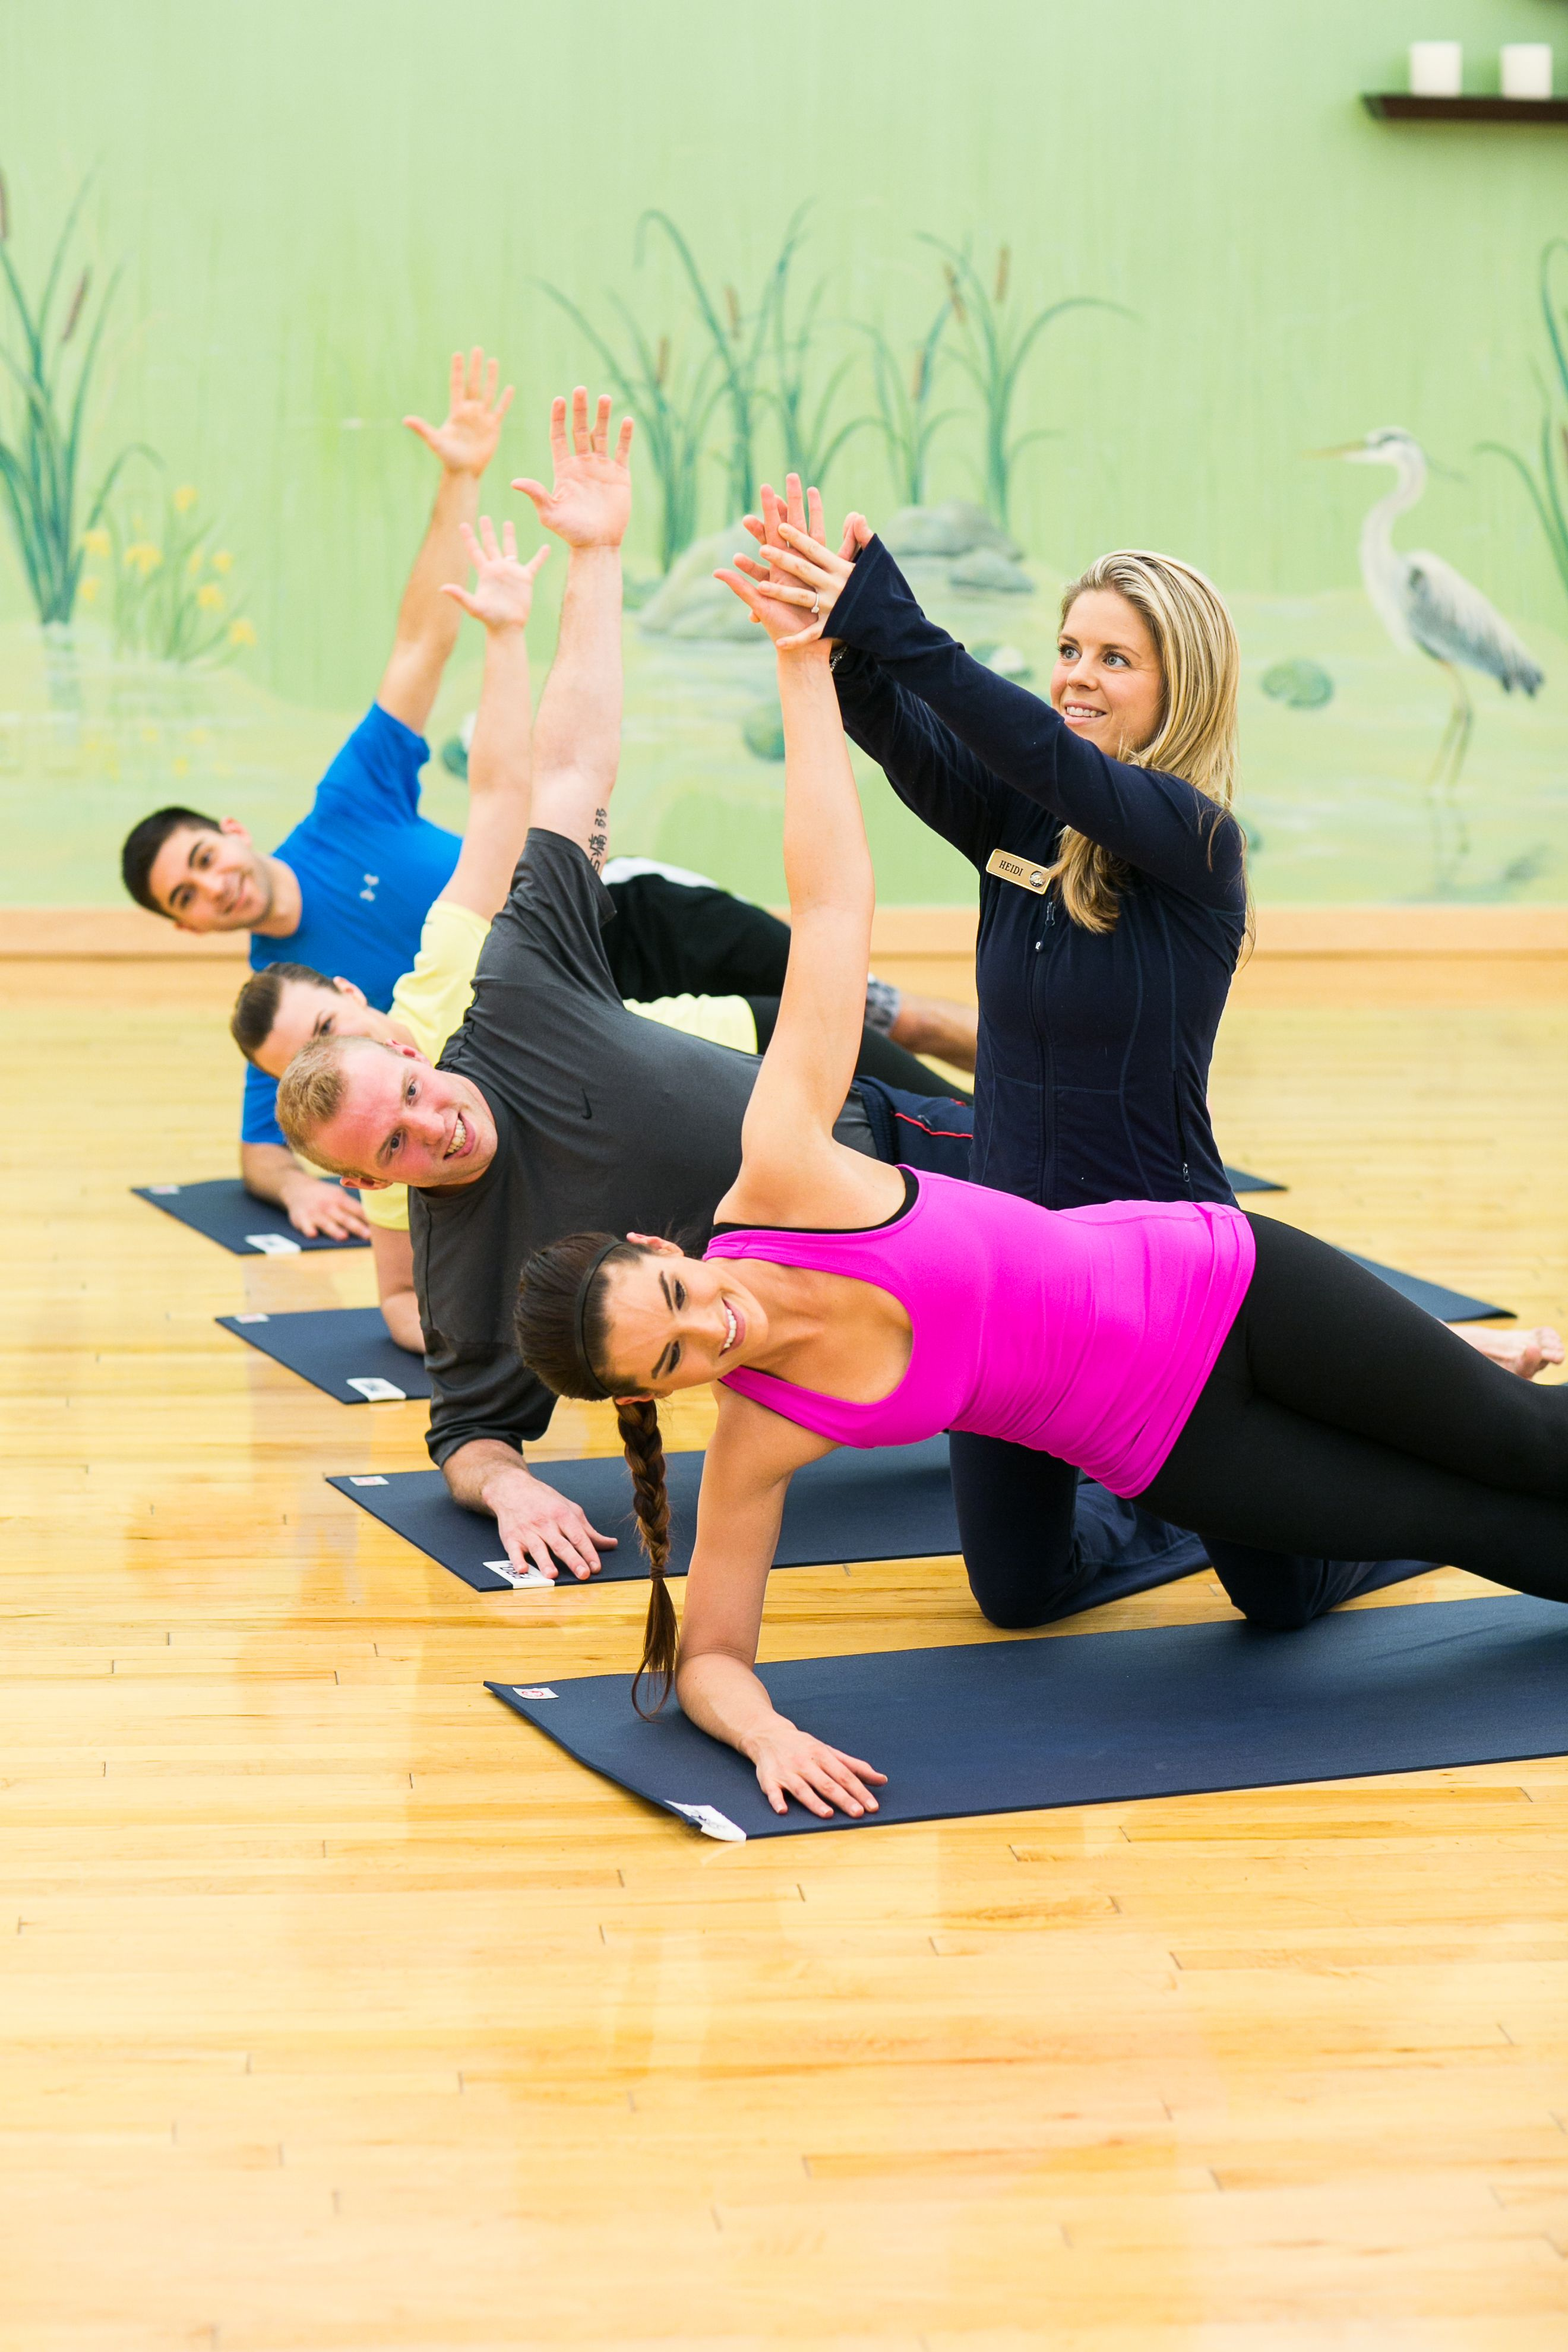 Yoga at PRO Sports Club. Get a workout while relieving